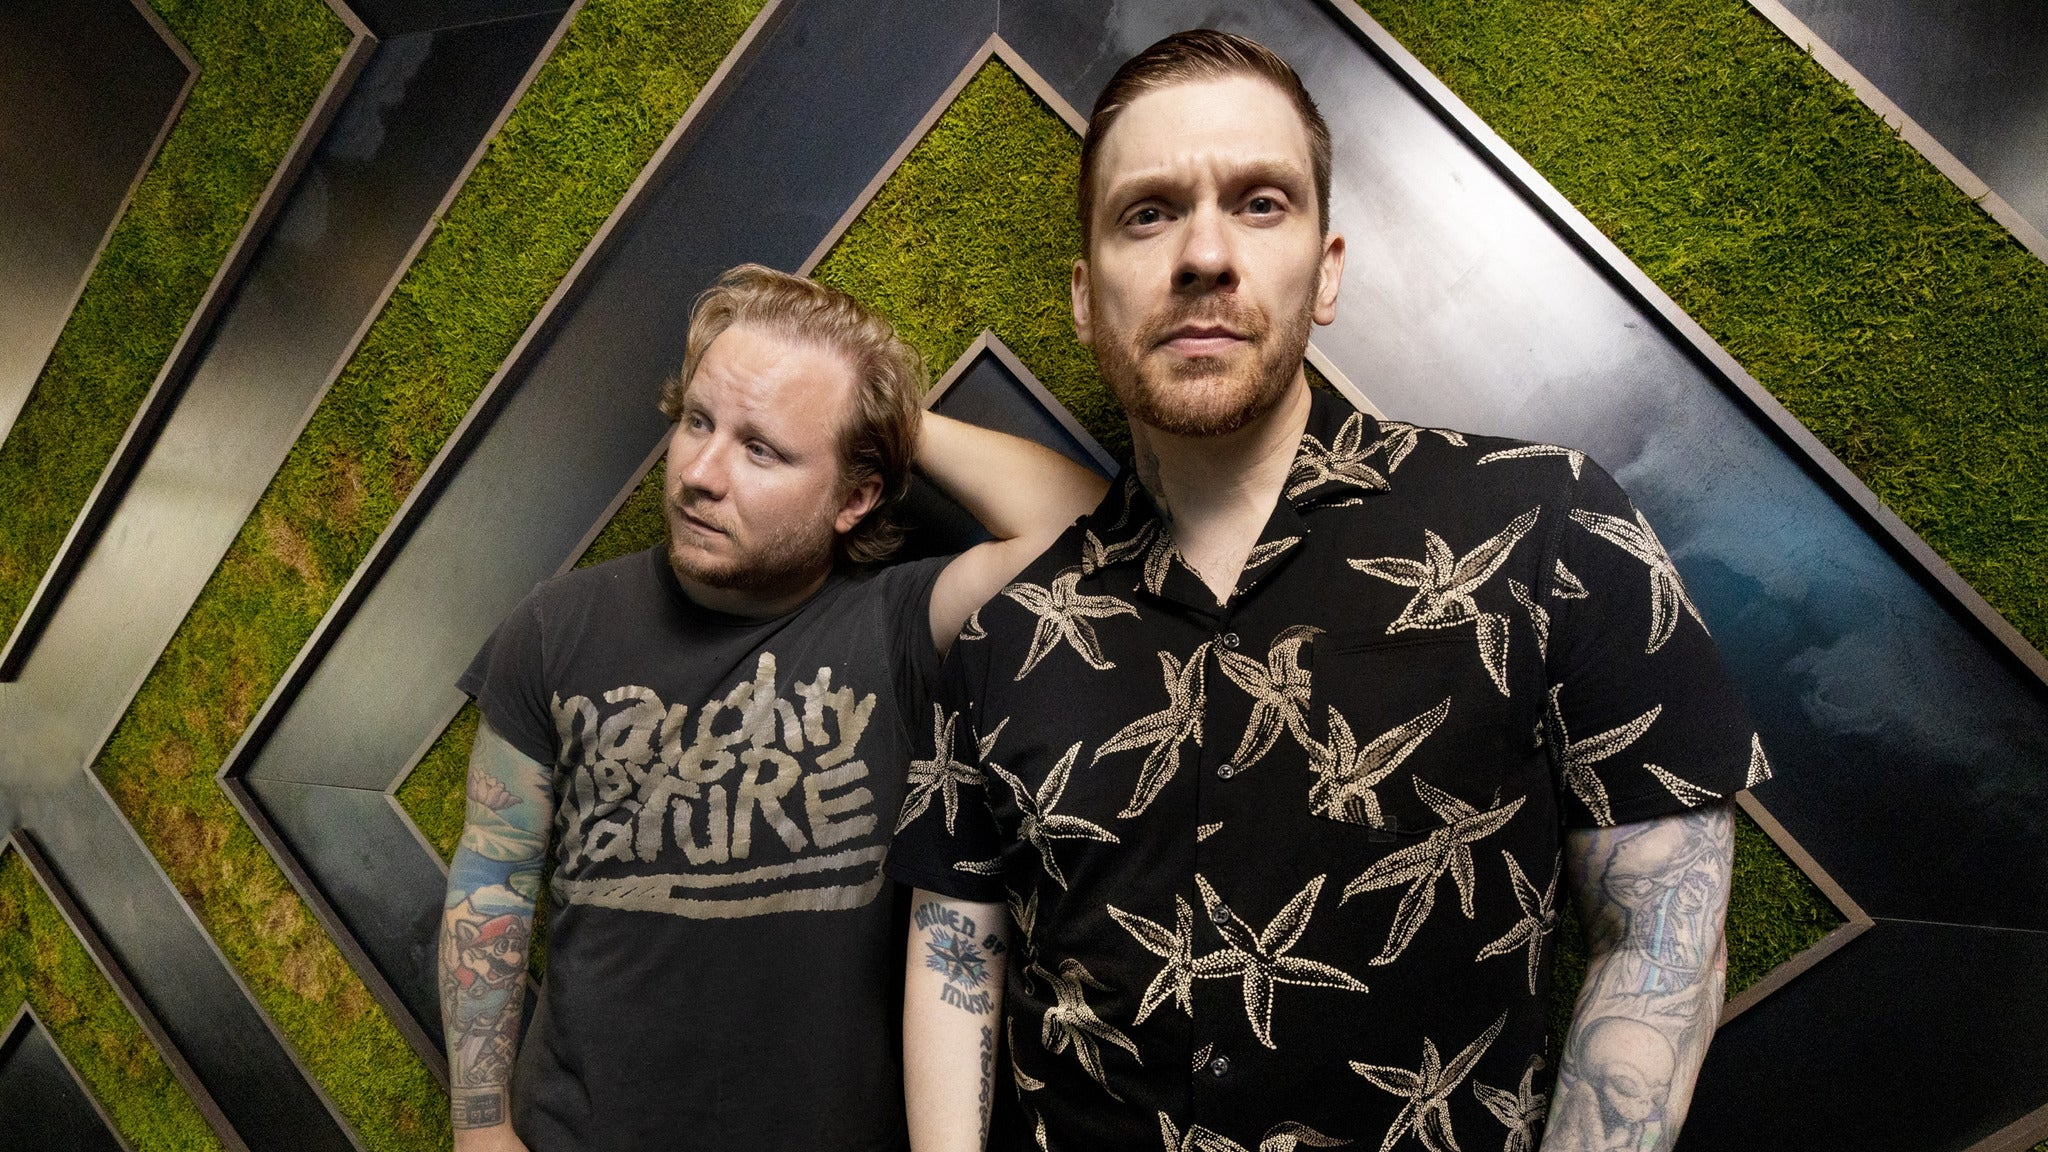 The 93.9 X-mas Show starring Smith & Meyers of Shinedown presale password